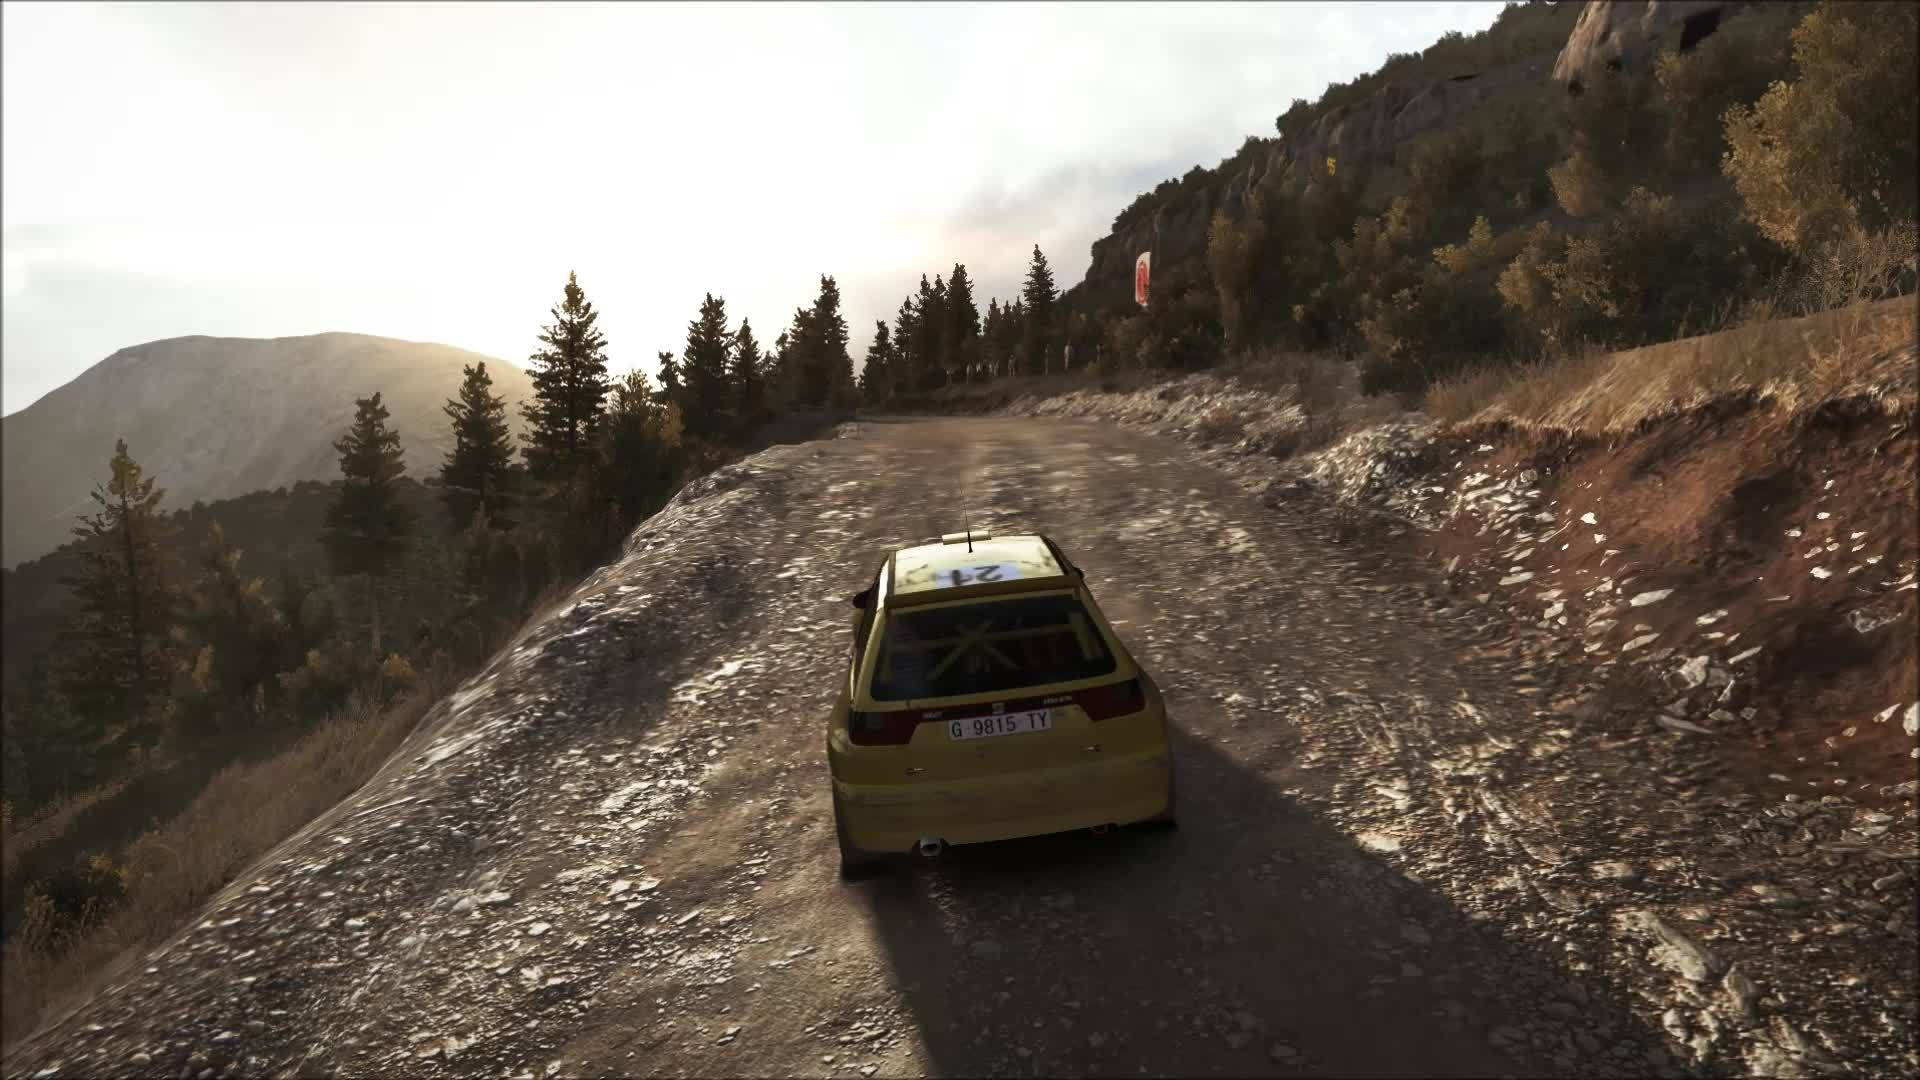 dirtgame, Probably the best possible place to puncture a tire. (reddit) GIFs